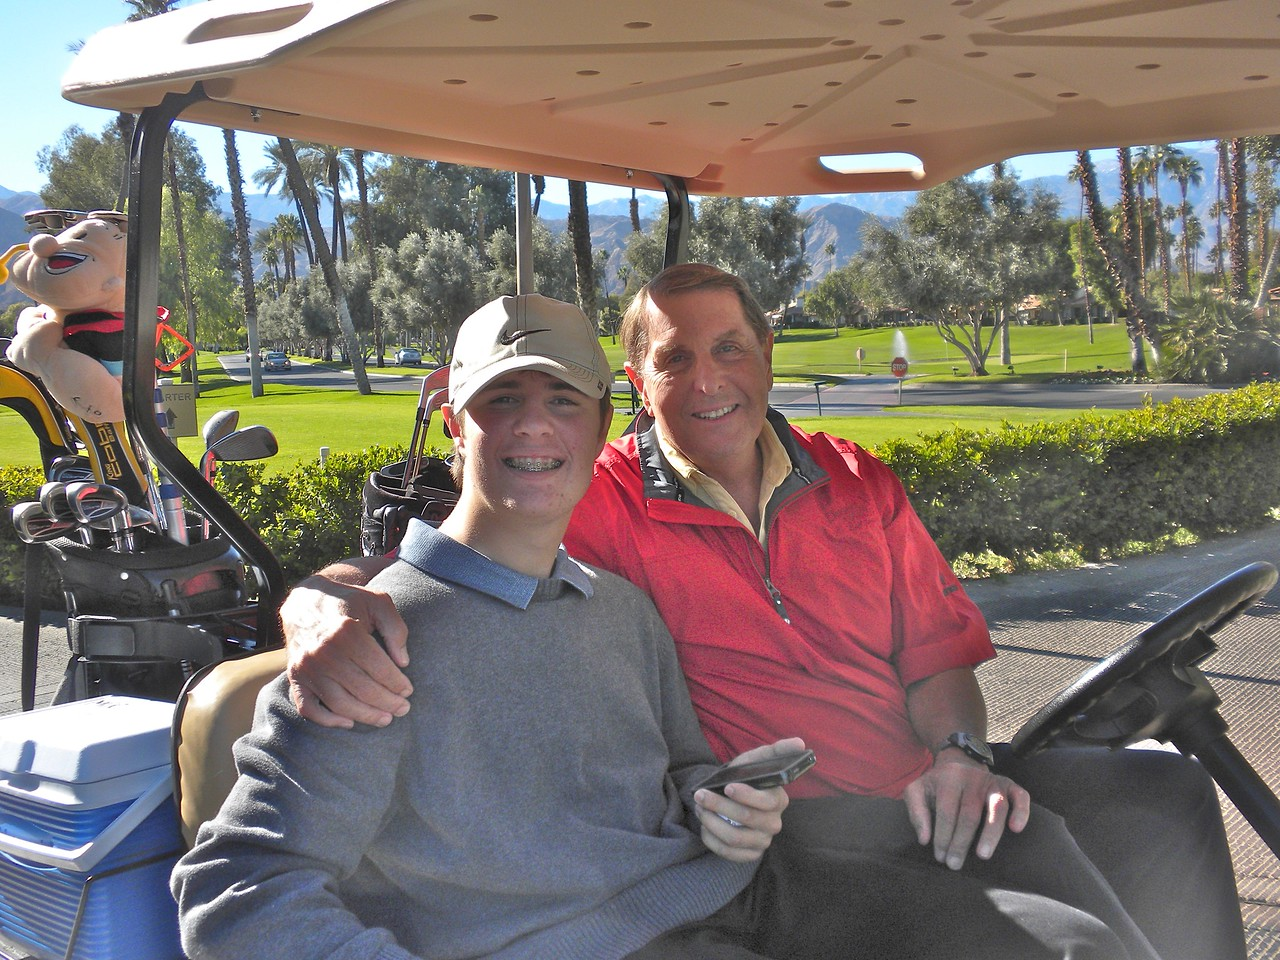 Finishing up Golf at the Monterey Country Club with Paul